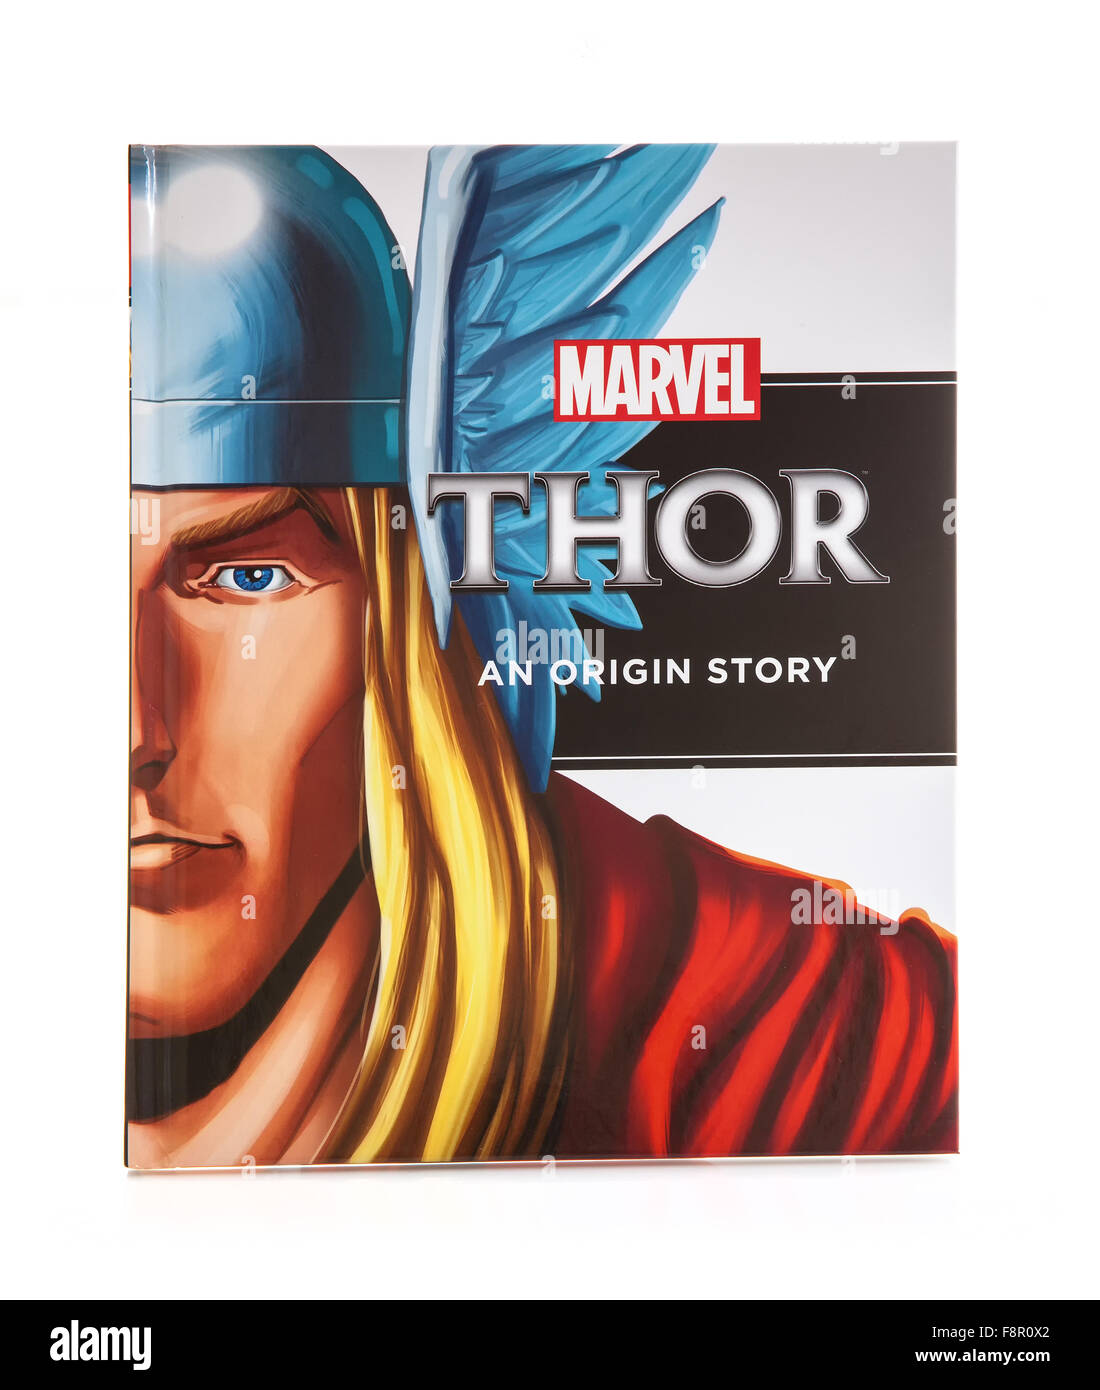 MARVEL Book THOR an Origin Super Hero Story on a White background - Stock Image